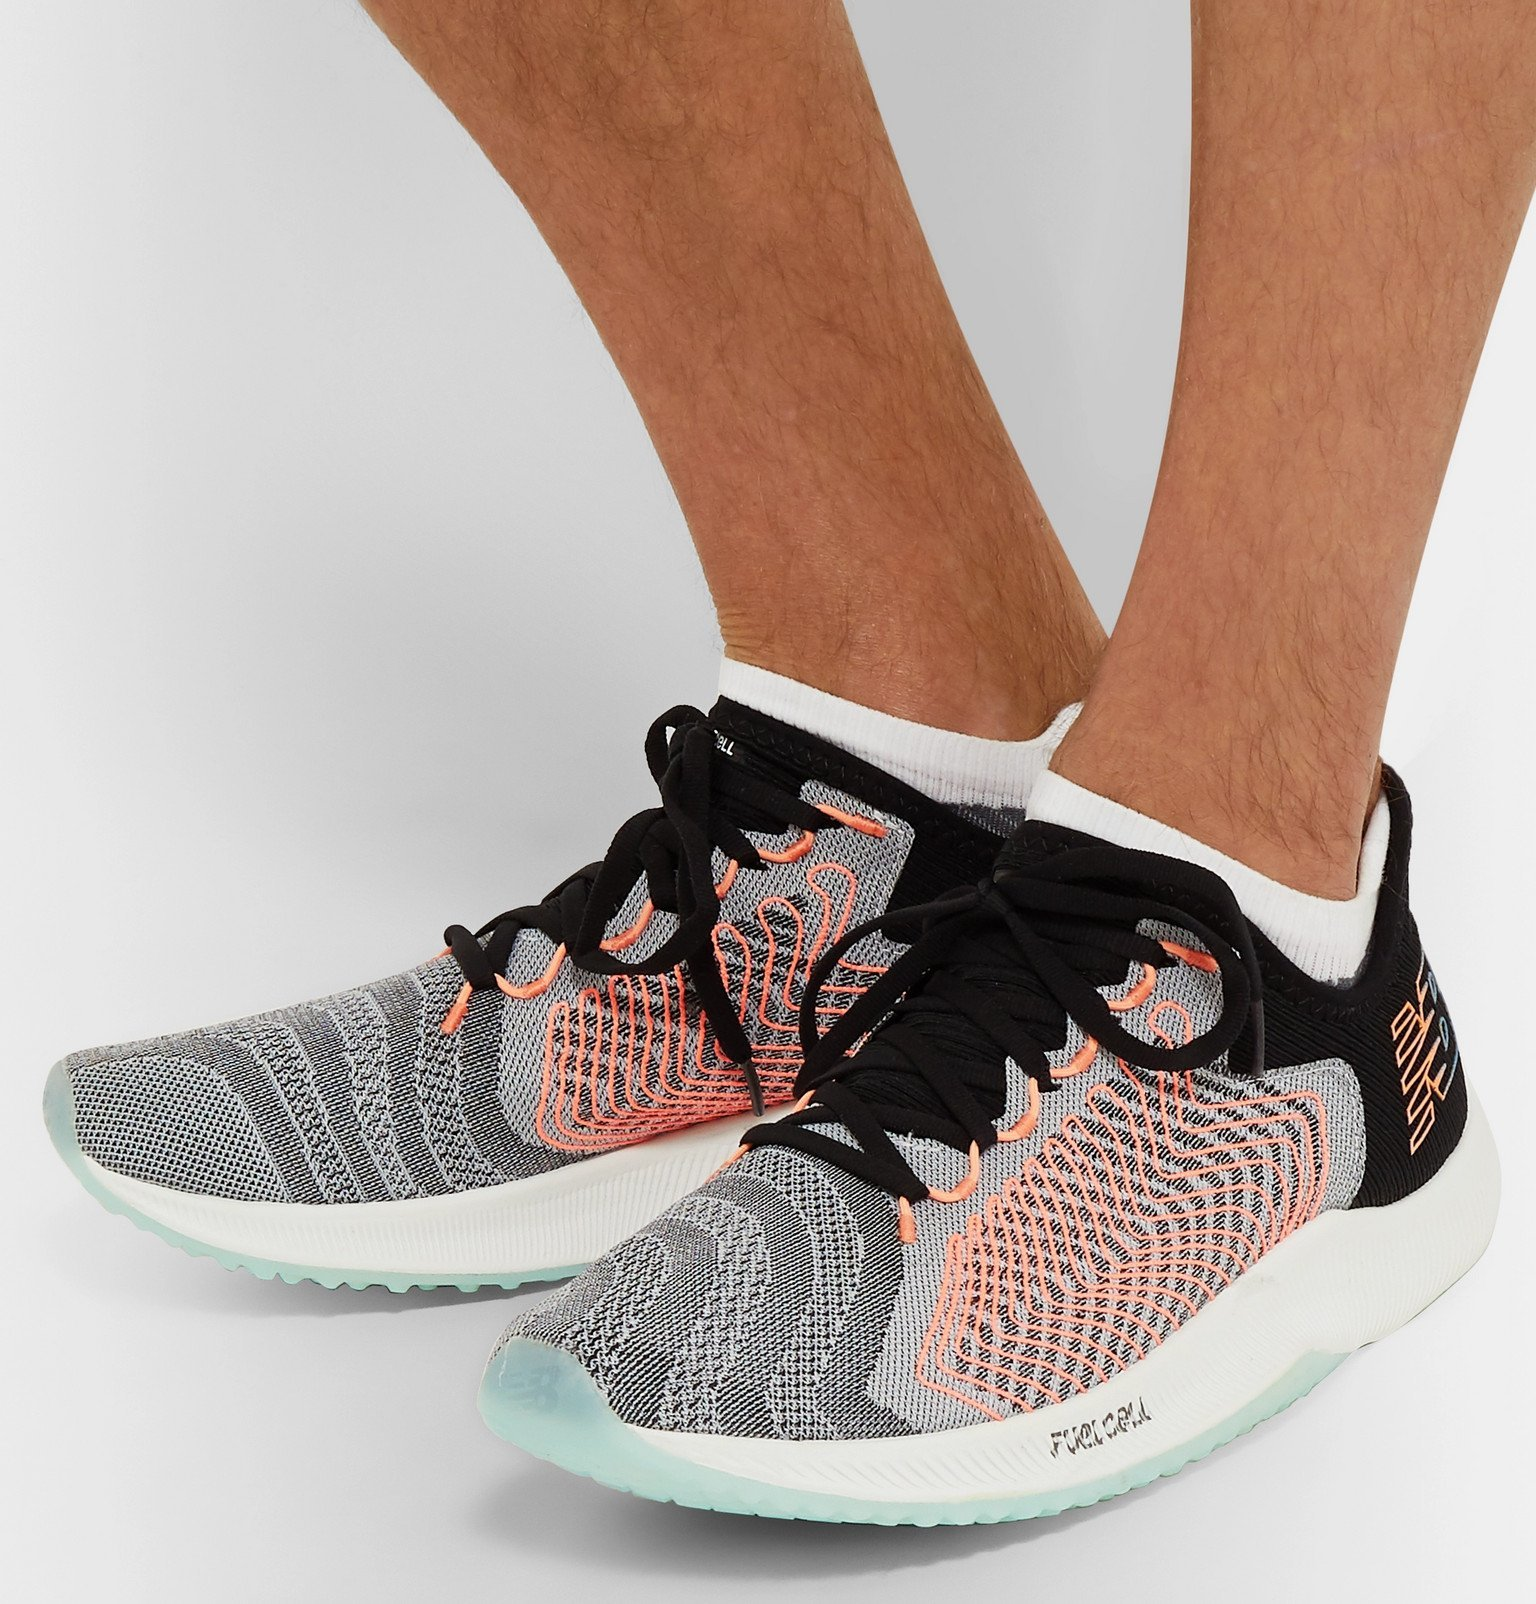 New Balance - FuelCell Rebel Stretch-Knit Running Sneakers - Gray